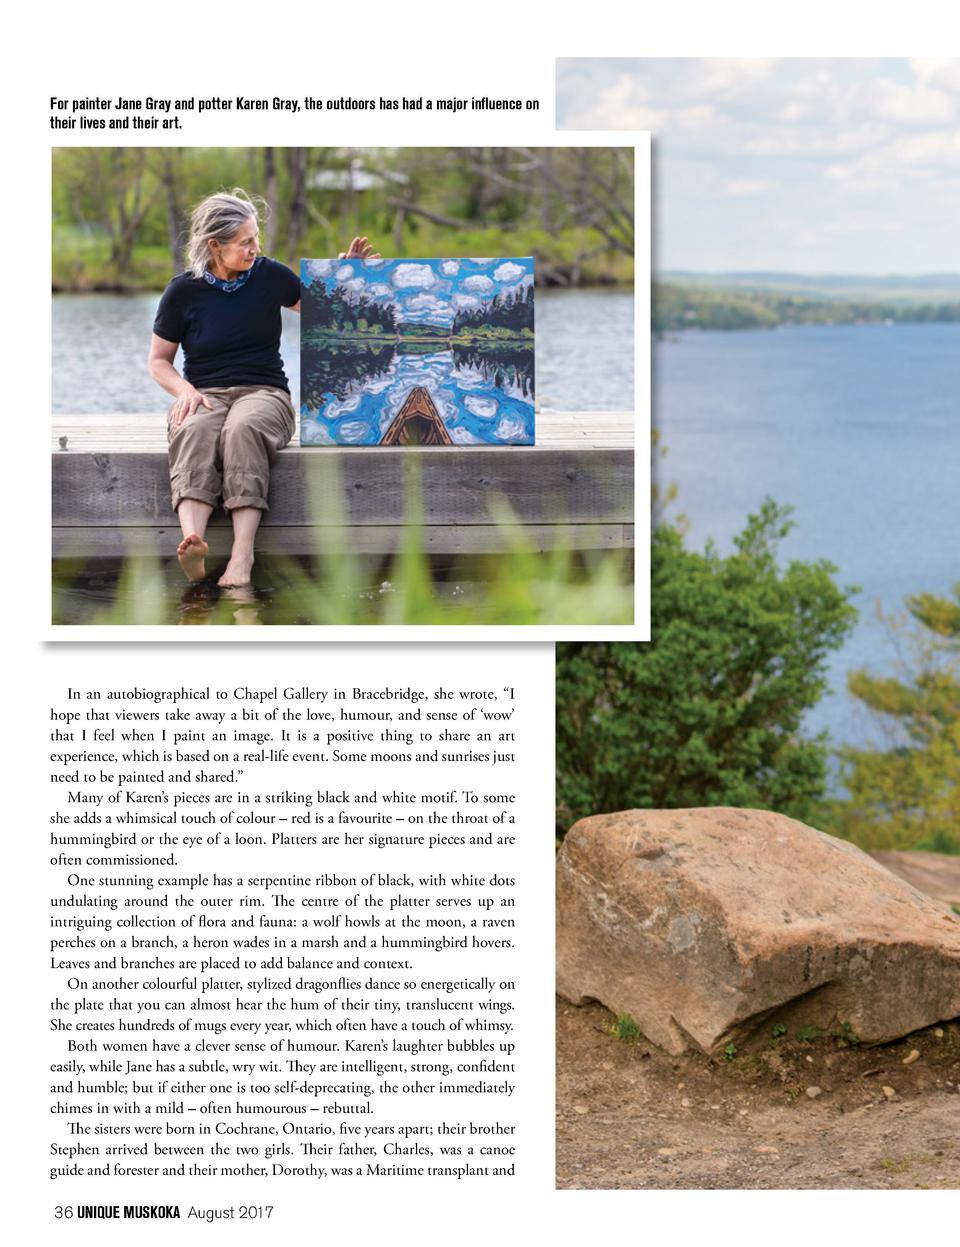 For painter Jane Gray and potter Karen Gray, the outdoors has had a major influence on their lives and their art.  In an a...